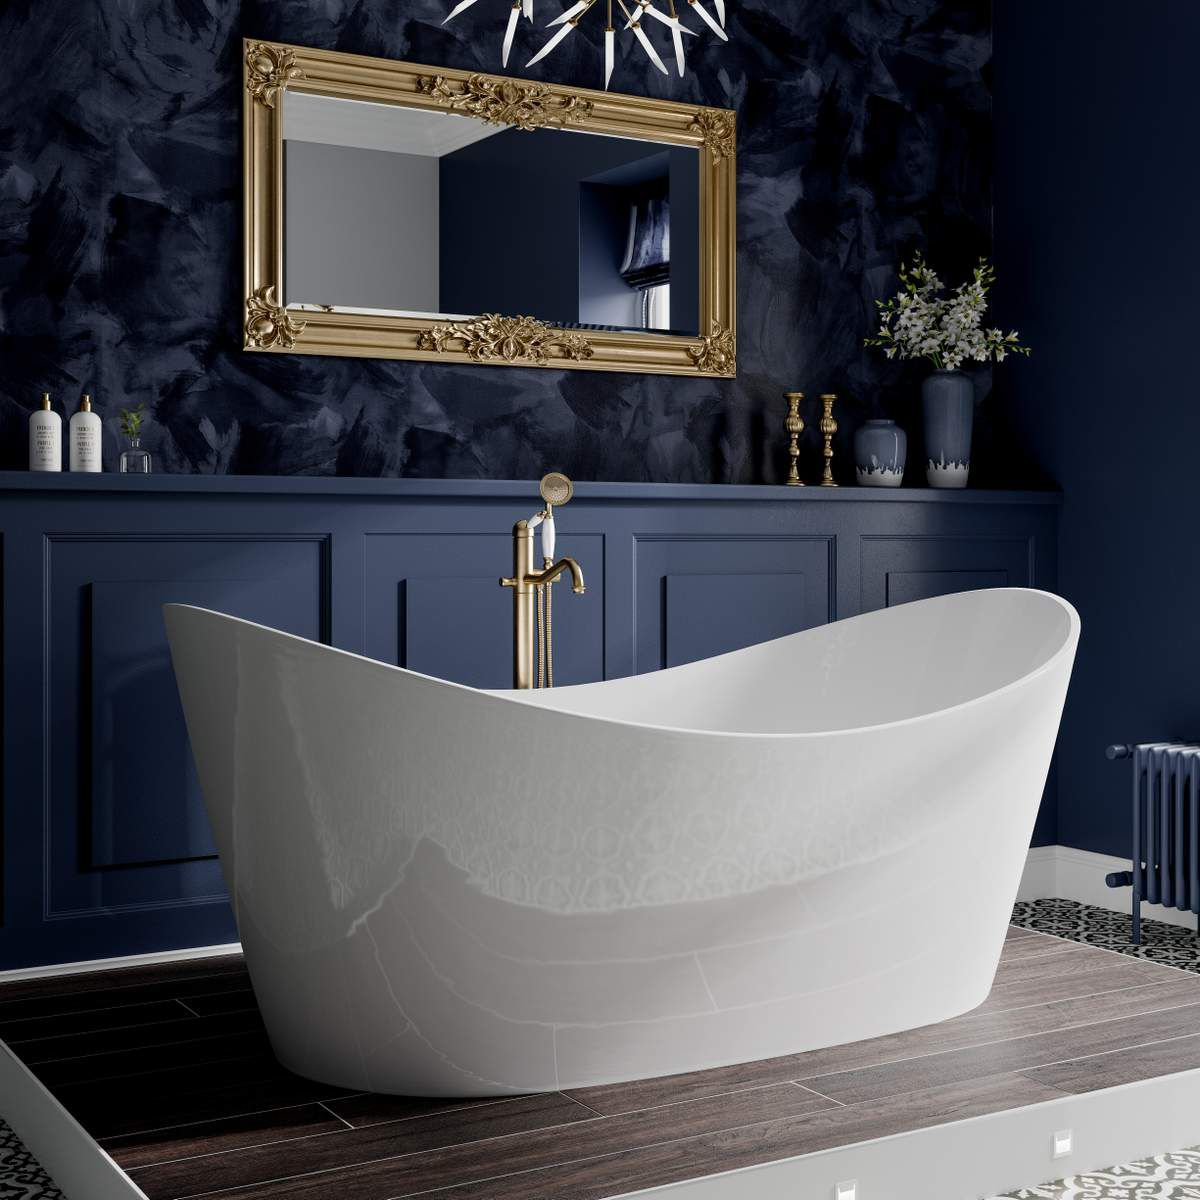 image example of a freestanding bath